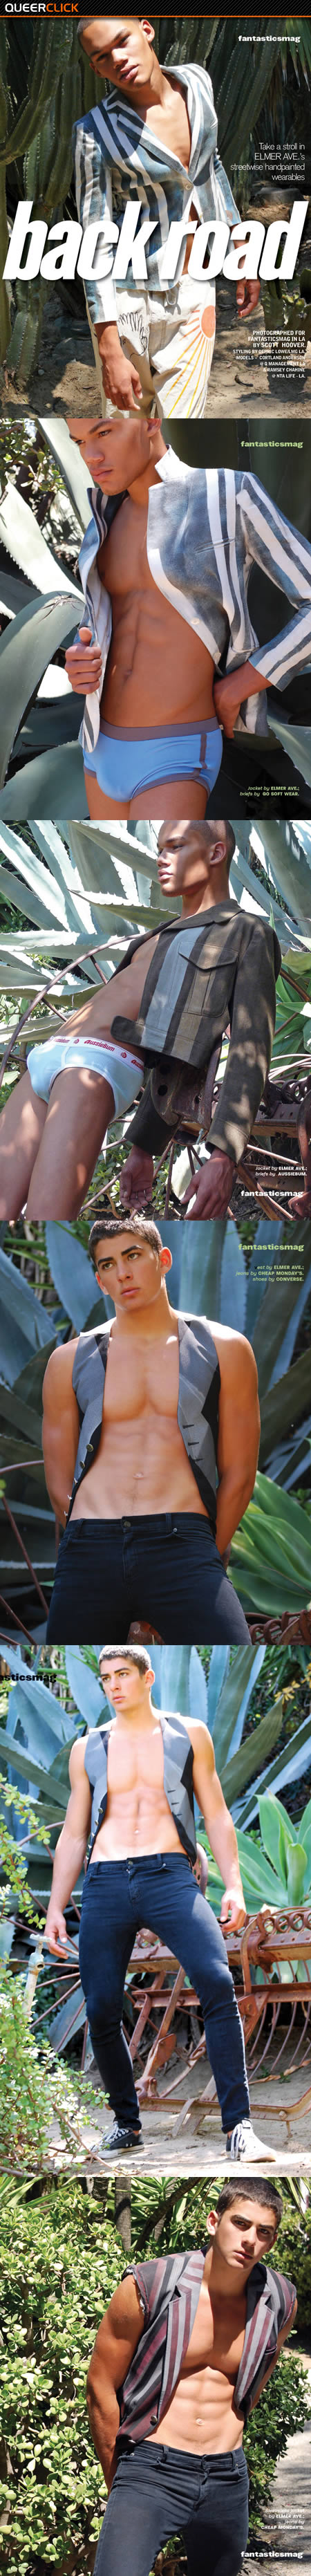 BackRoad en FantasticsMag